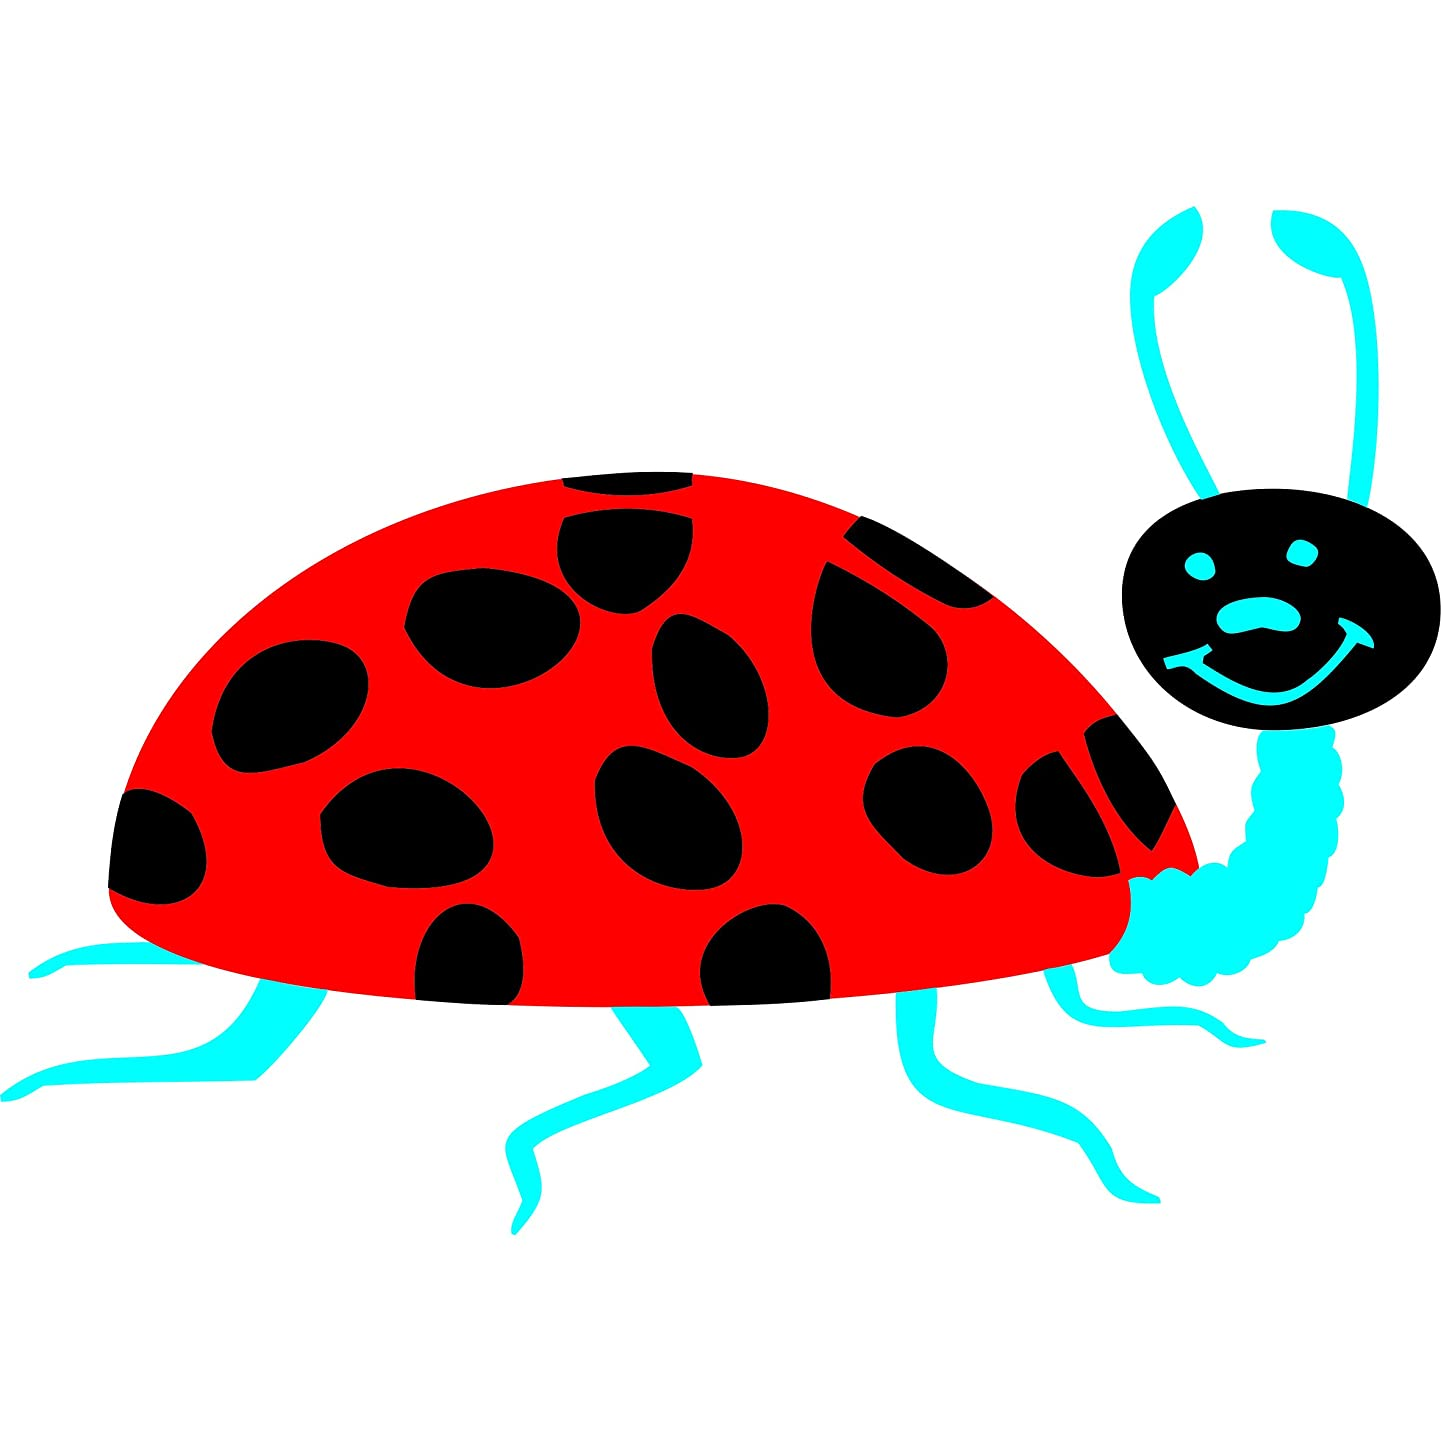 Ladybug Stencil - 6.5 x 4.5 inch (M) - Large Reusable Insect Bug Baby Childs Nursery Wall Stencils for Painting - Use on Paper Projects Walls Floors Fabric Furniture Glass Wood etc.